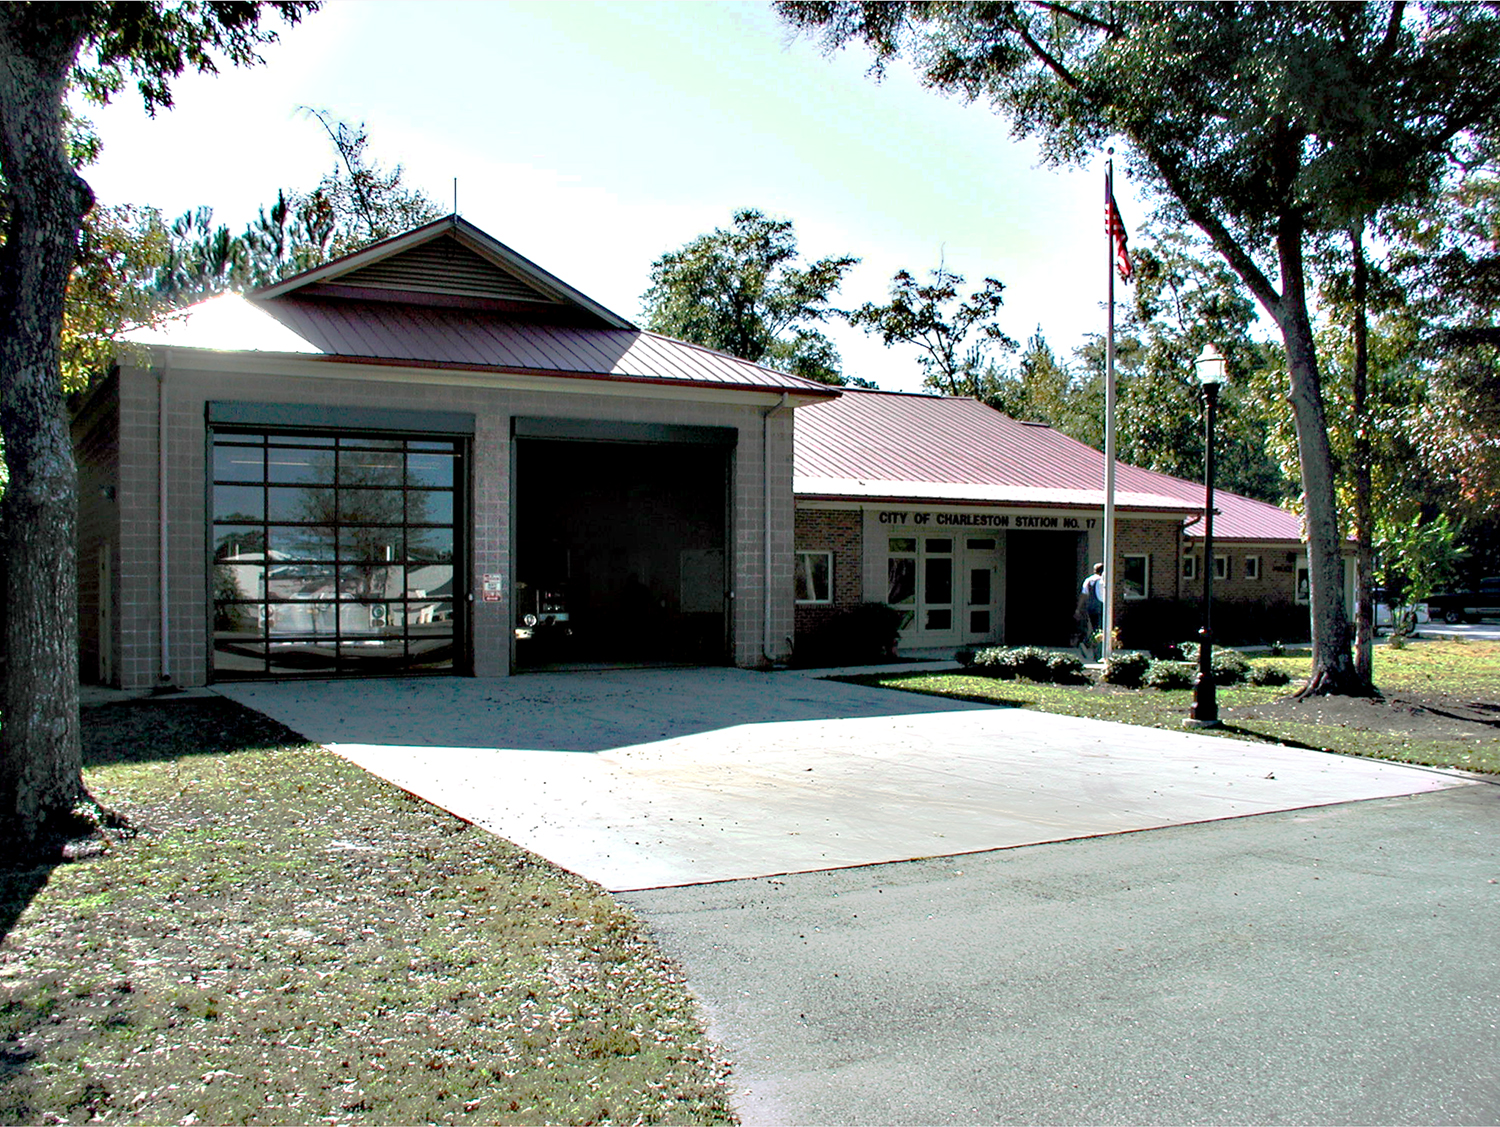 JOHNS ISLAND FIRE STATION No. 17M